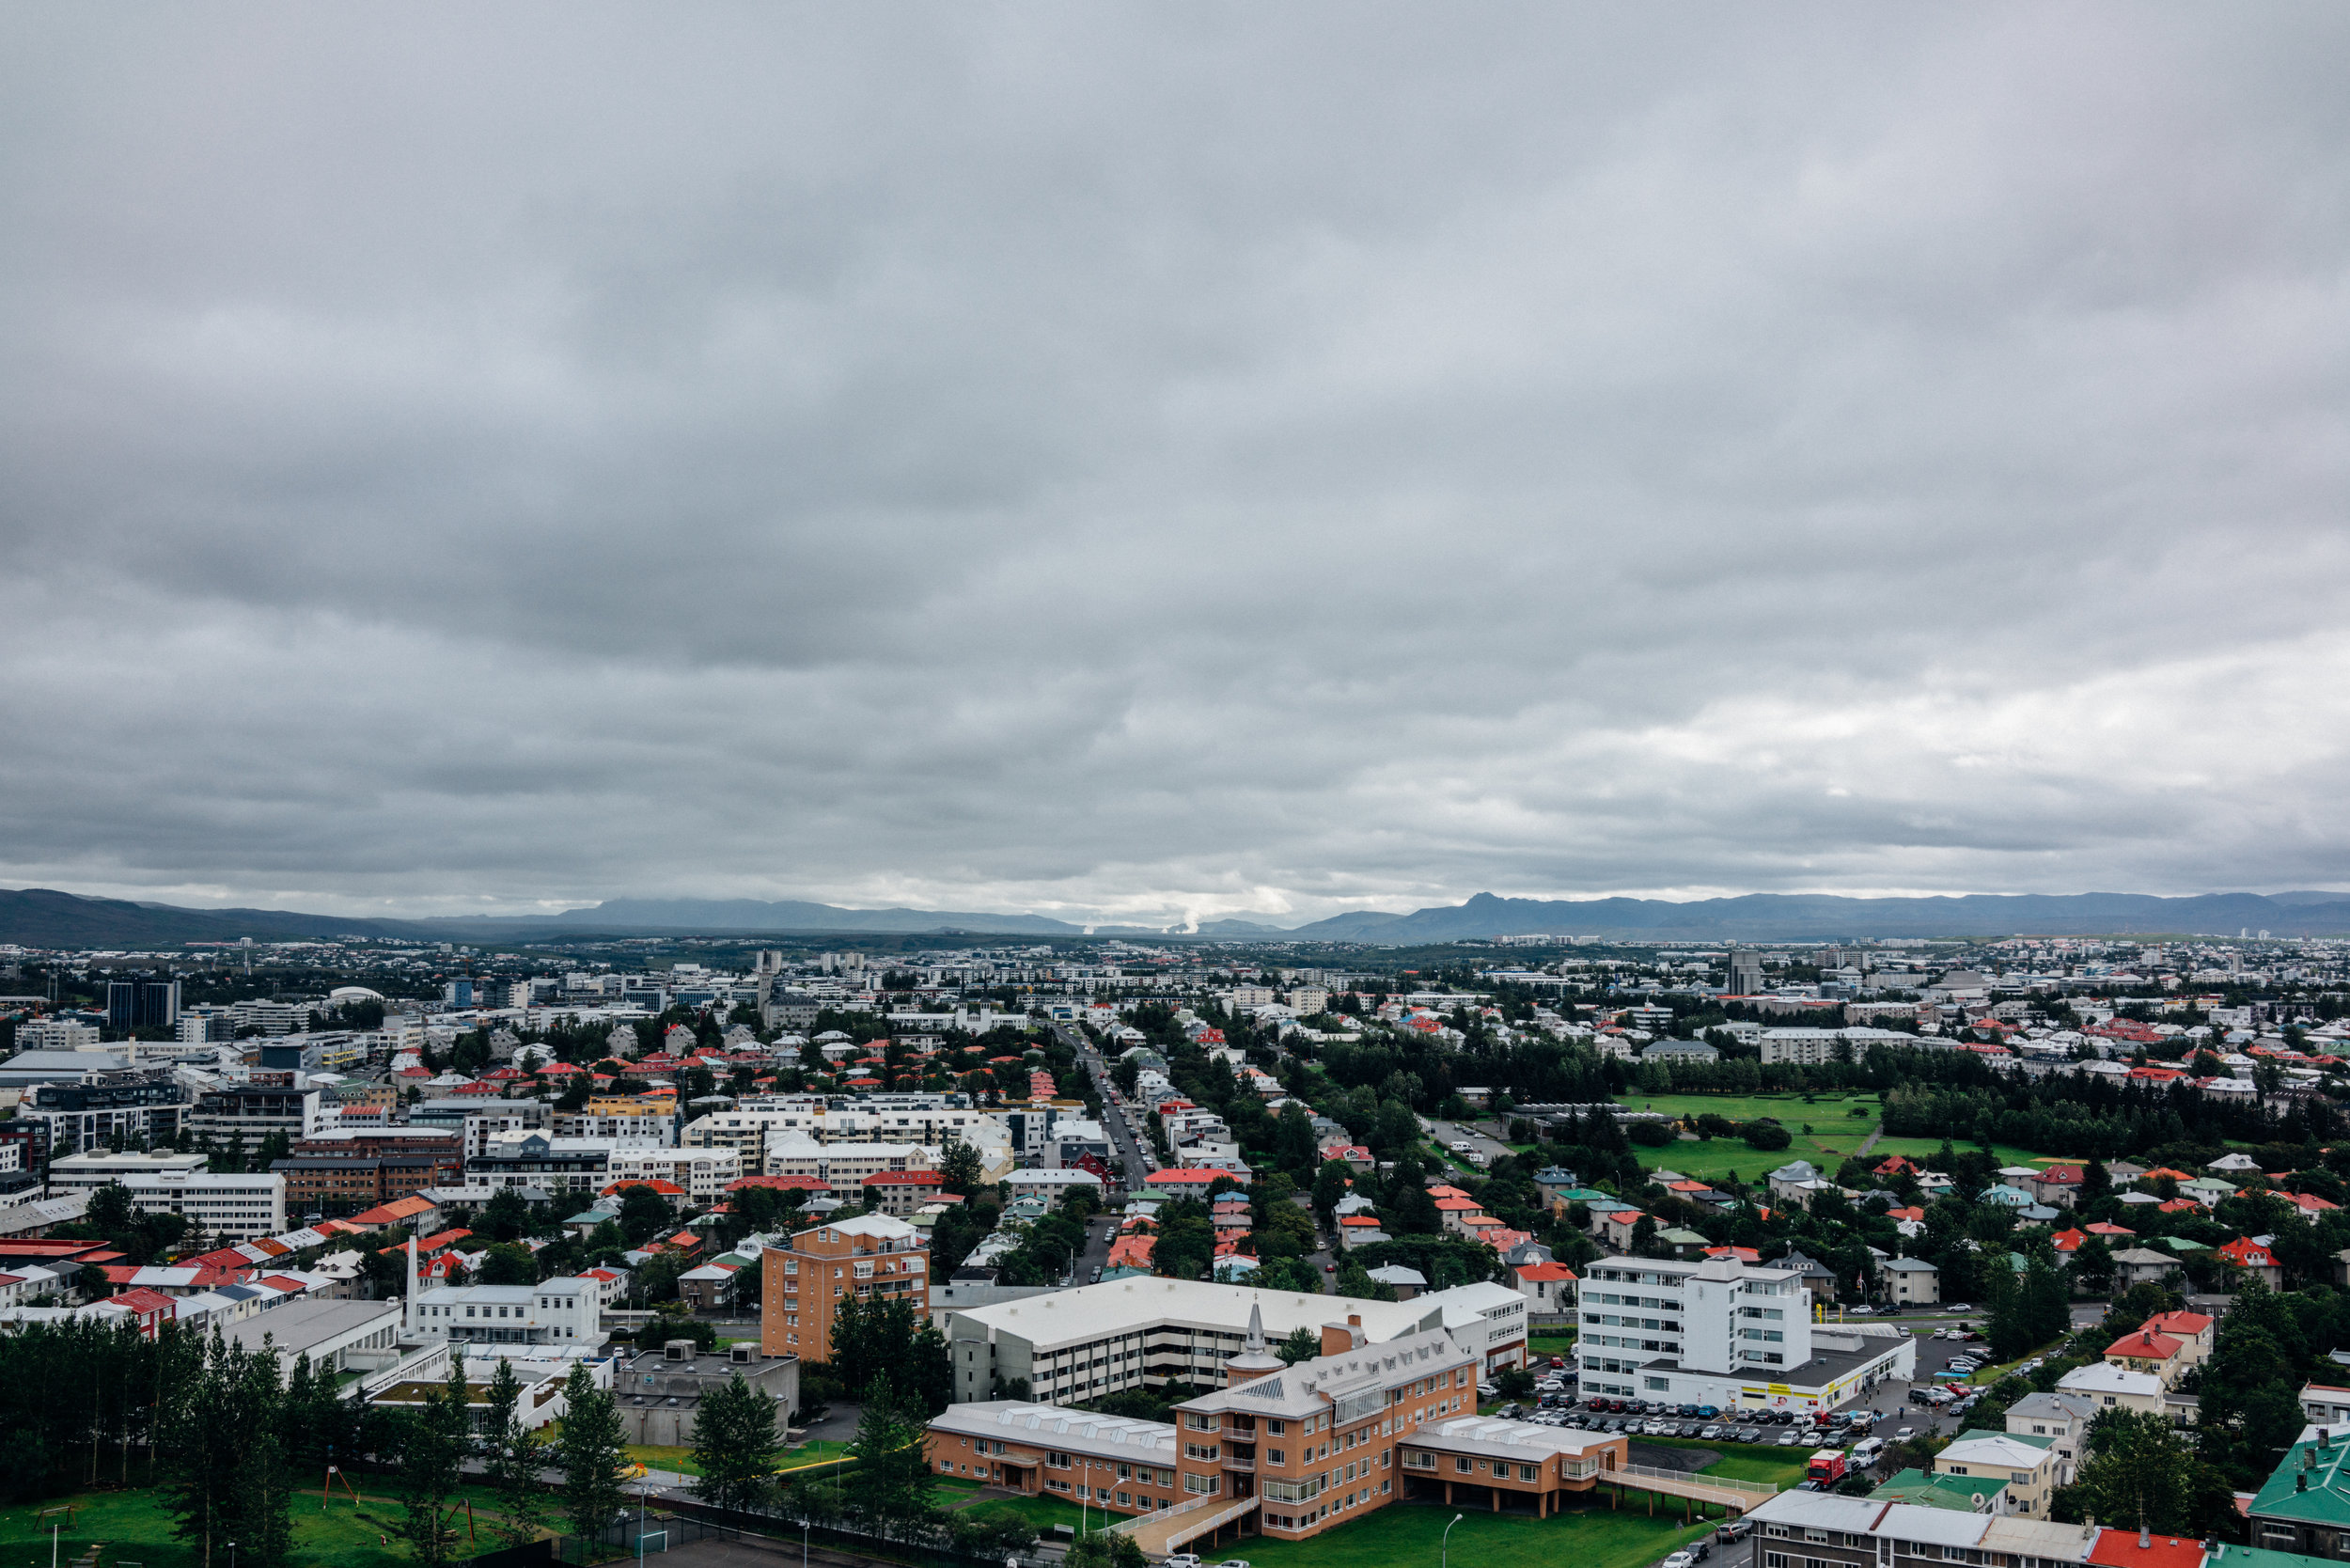 Oh Reykjavík, look at this cute little town!